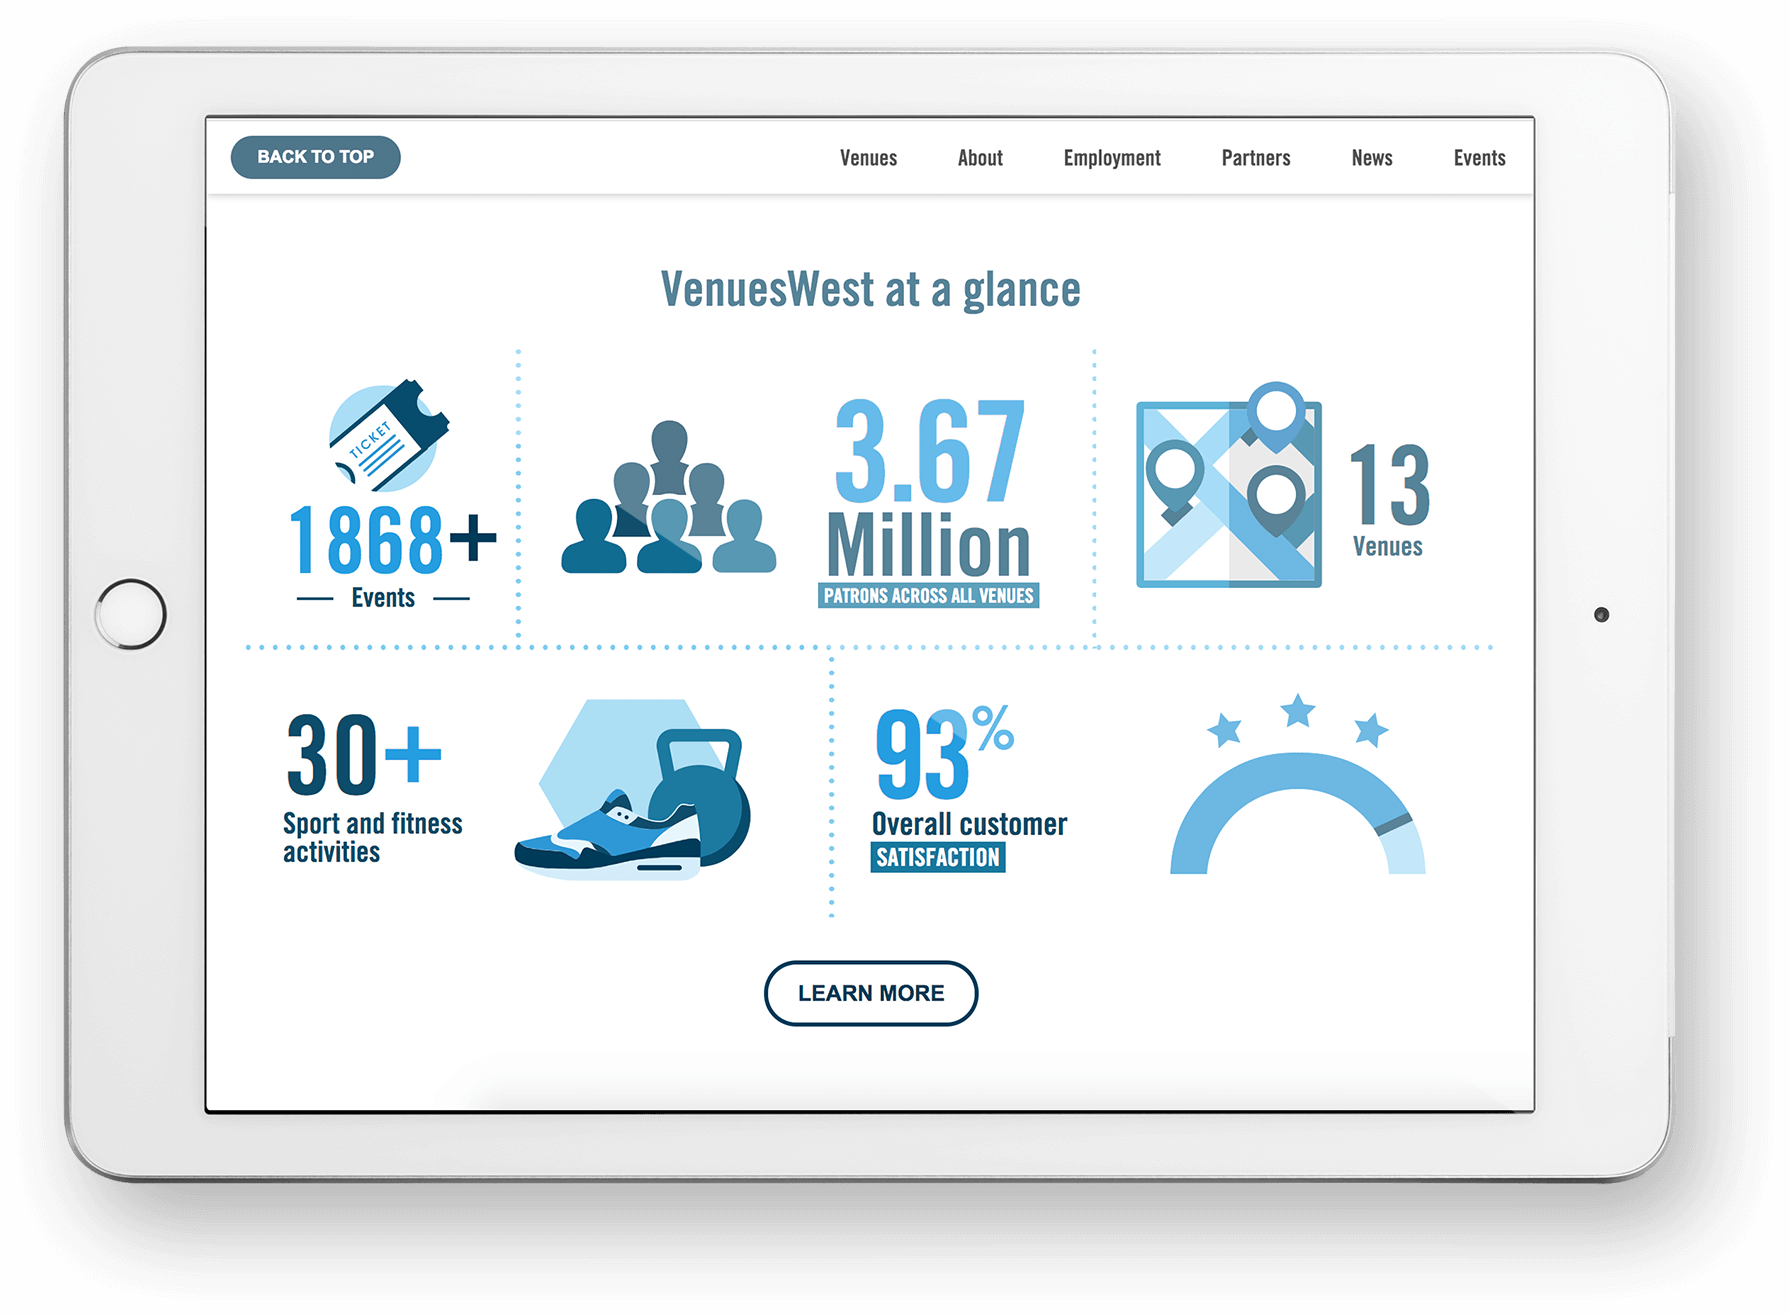 VenuesWest at a glance